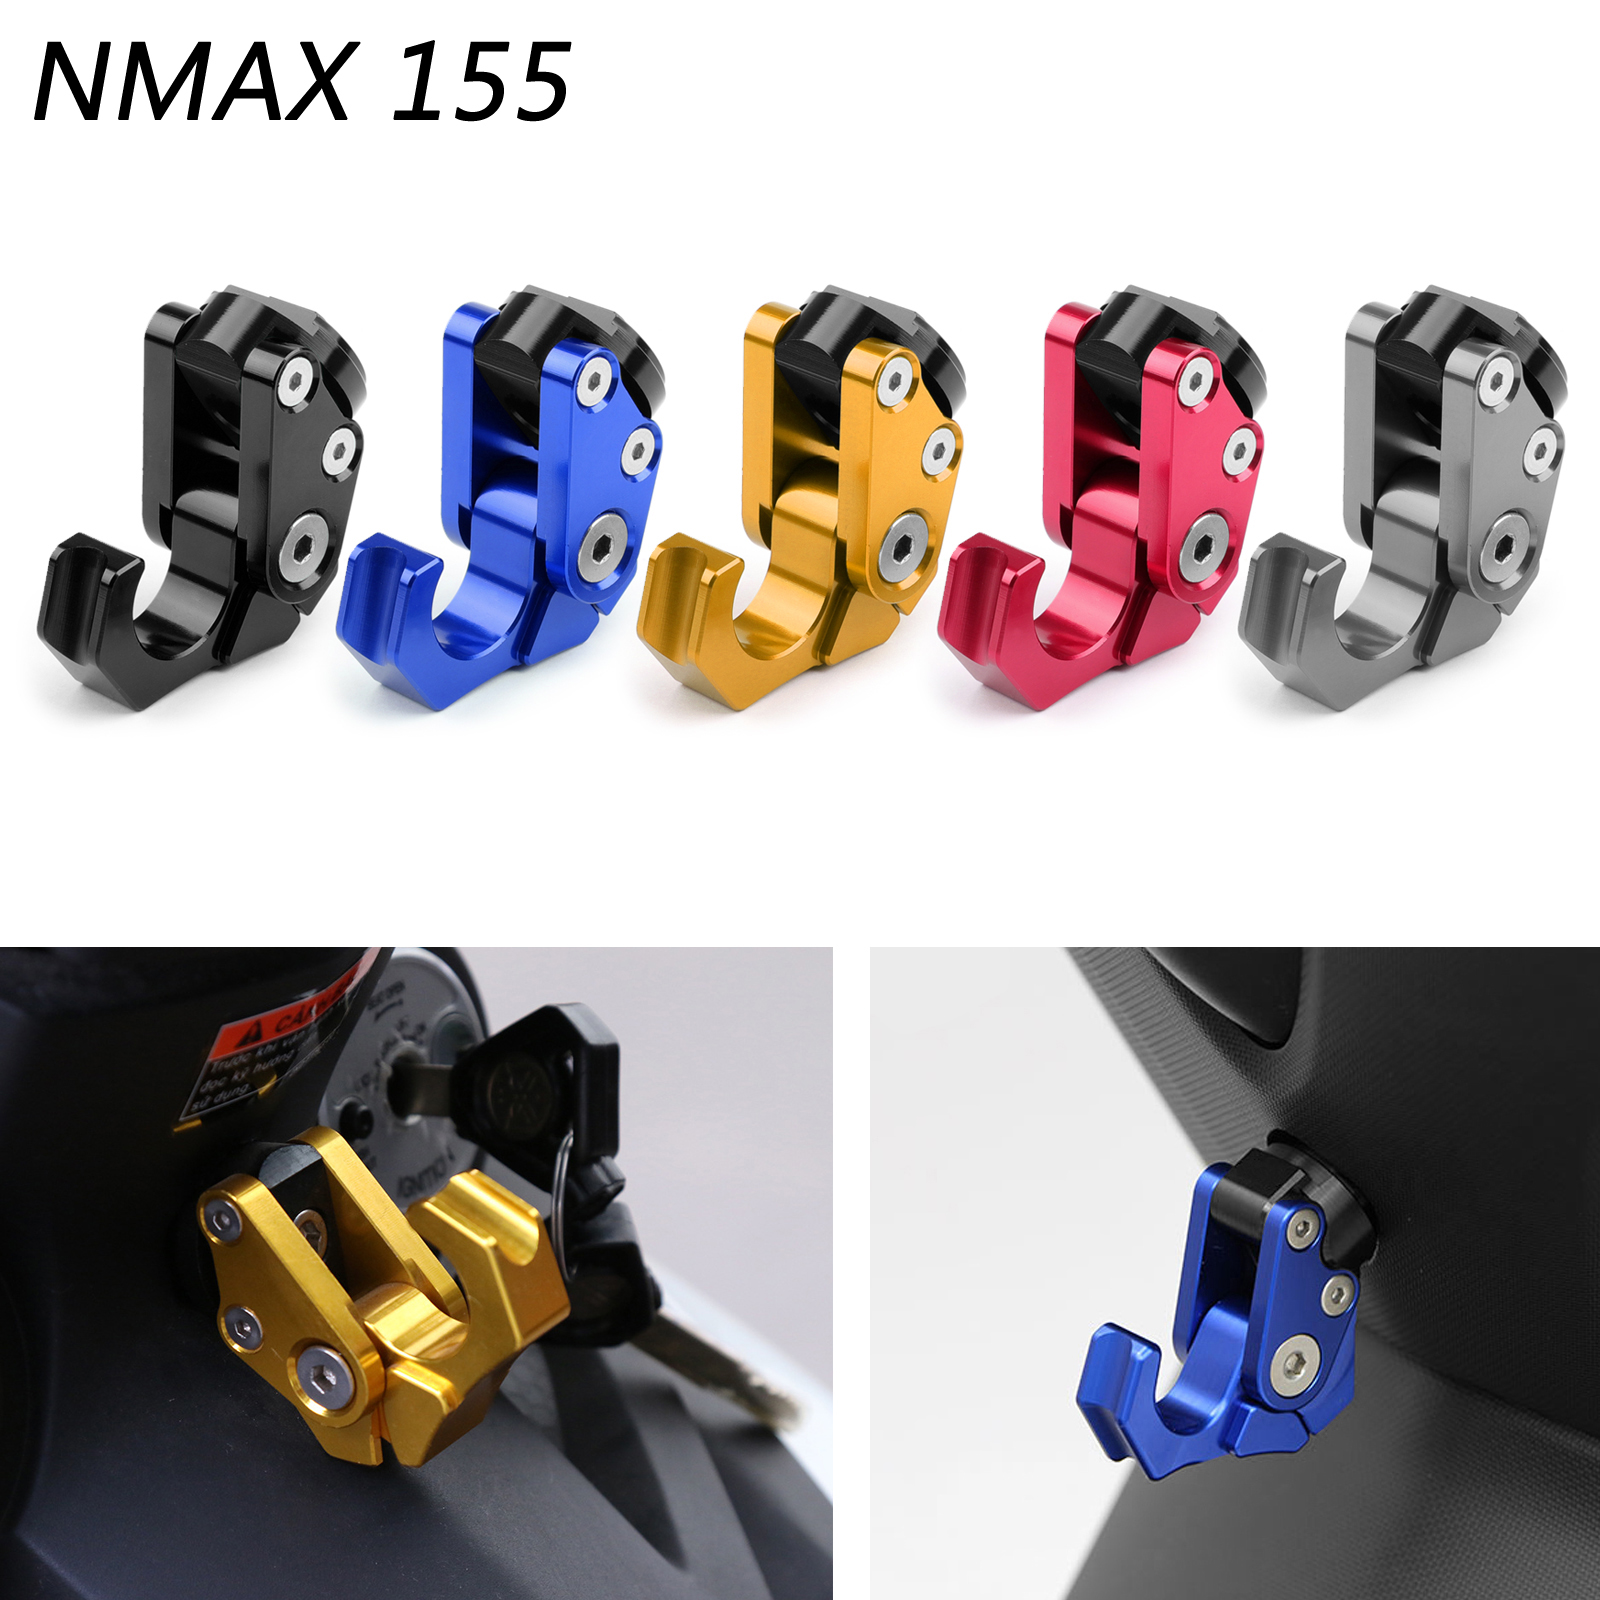 Areyourshop Carry Helmet Bottle Hanger Holder CNC Aluminum Alloy Hooks M6 For <font><b>Yamaha</b></font> NMAX 155 <font><b>NMAX155</b></font> RC150 For Honda Scoopy image